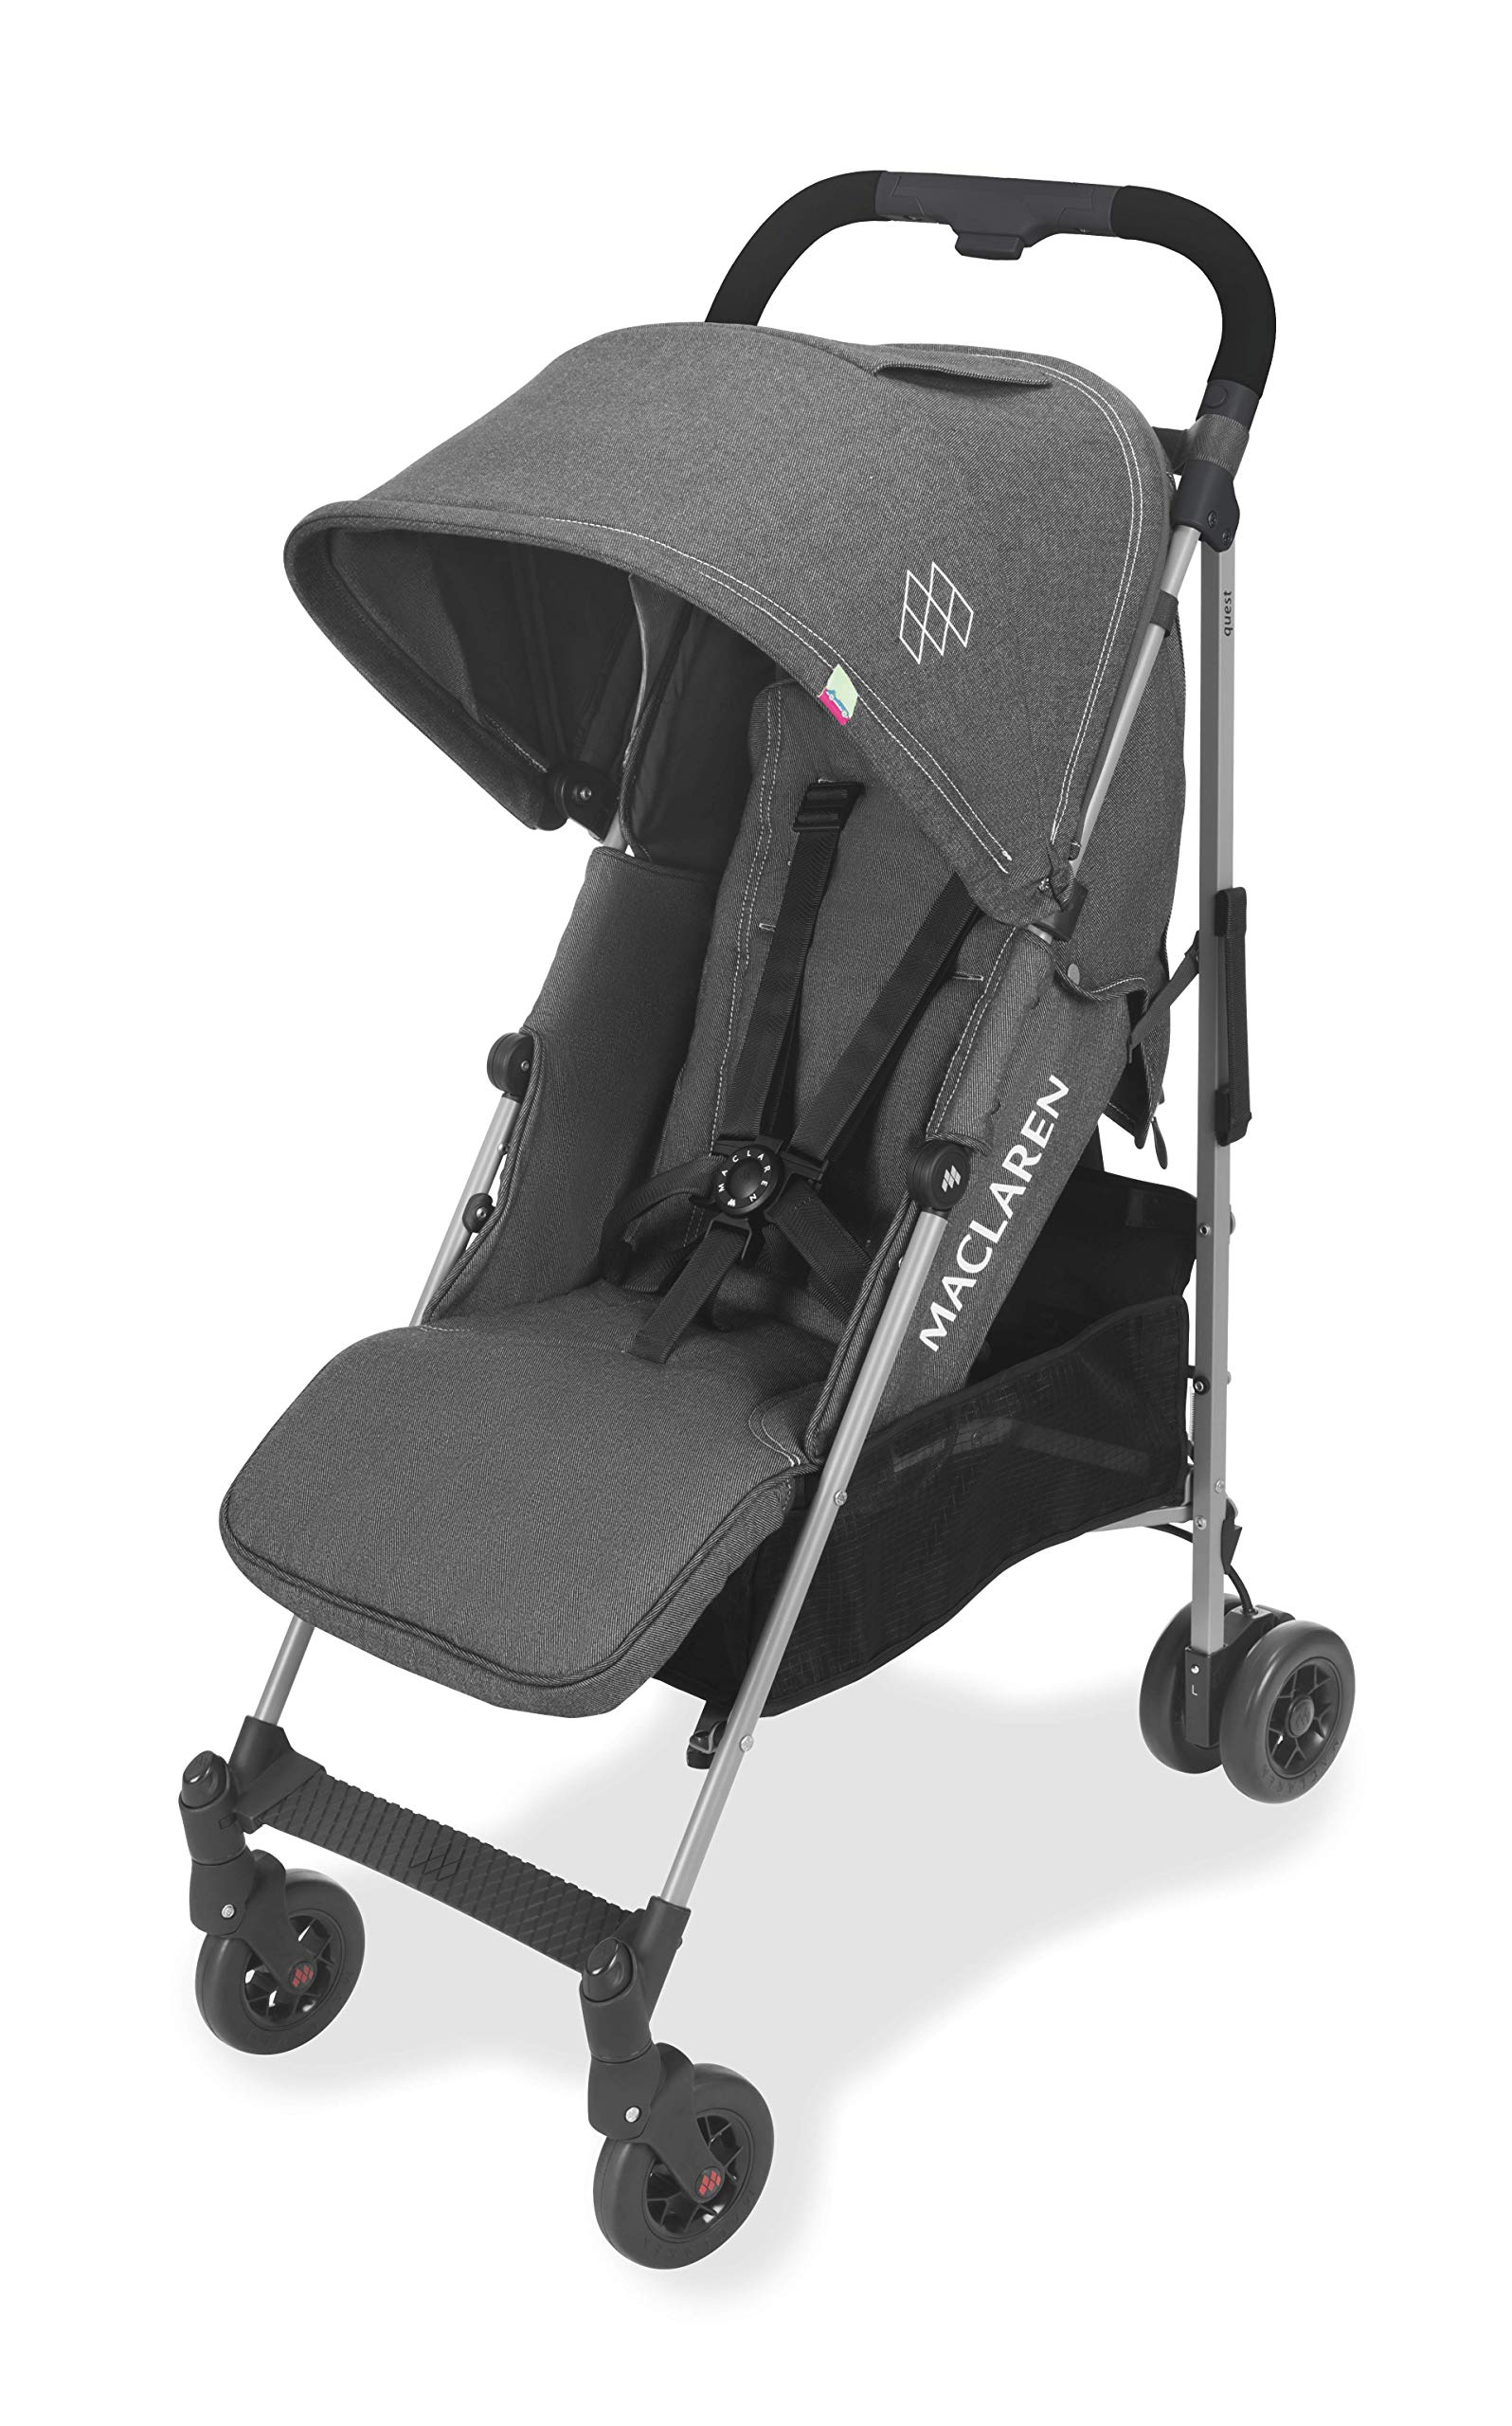 Maclaren Quest Arc Stroller- Ideal for Newborns up to 25kg with extendable UPF 50+/Waterproof Hood, Multi-Position seat and 4-Wheel Suspension. Maclaren Carrycot Compatible. Accessories in The Box Maclaren Lightweight and compact. ideal for newborns and children up to 25kg. you can do it all with one-hand- open, close, push and adjust the seat, footrest and front safety lock Comfy and perfect for travel. the quest arc's padded seat reclines into 4 positions and converts into a new-born safety system. coupled with ultra light flat-free eva tires and all wheel suspension Smart product for active parents. compatible with the maclaren carrycot. all maclaren strollers have waterproof/ upf 50+ hoods to protect from the elements and machine washable seats to keep tidy 8